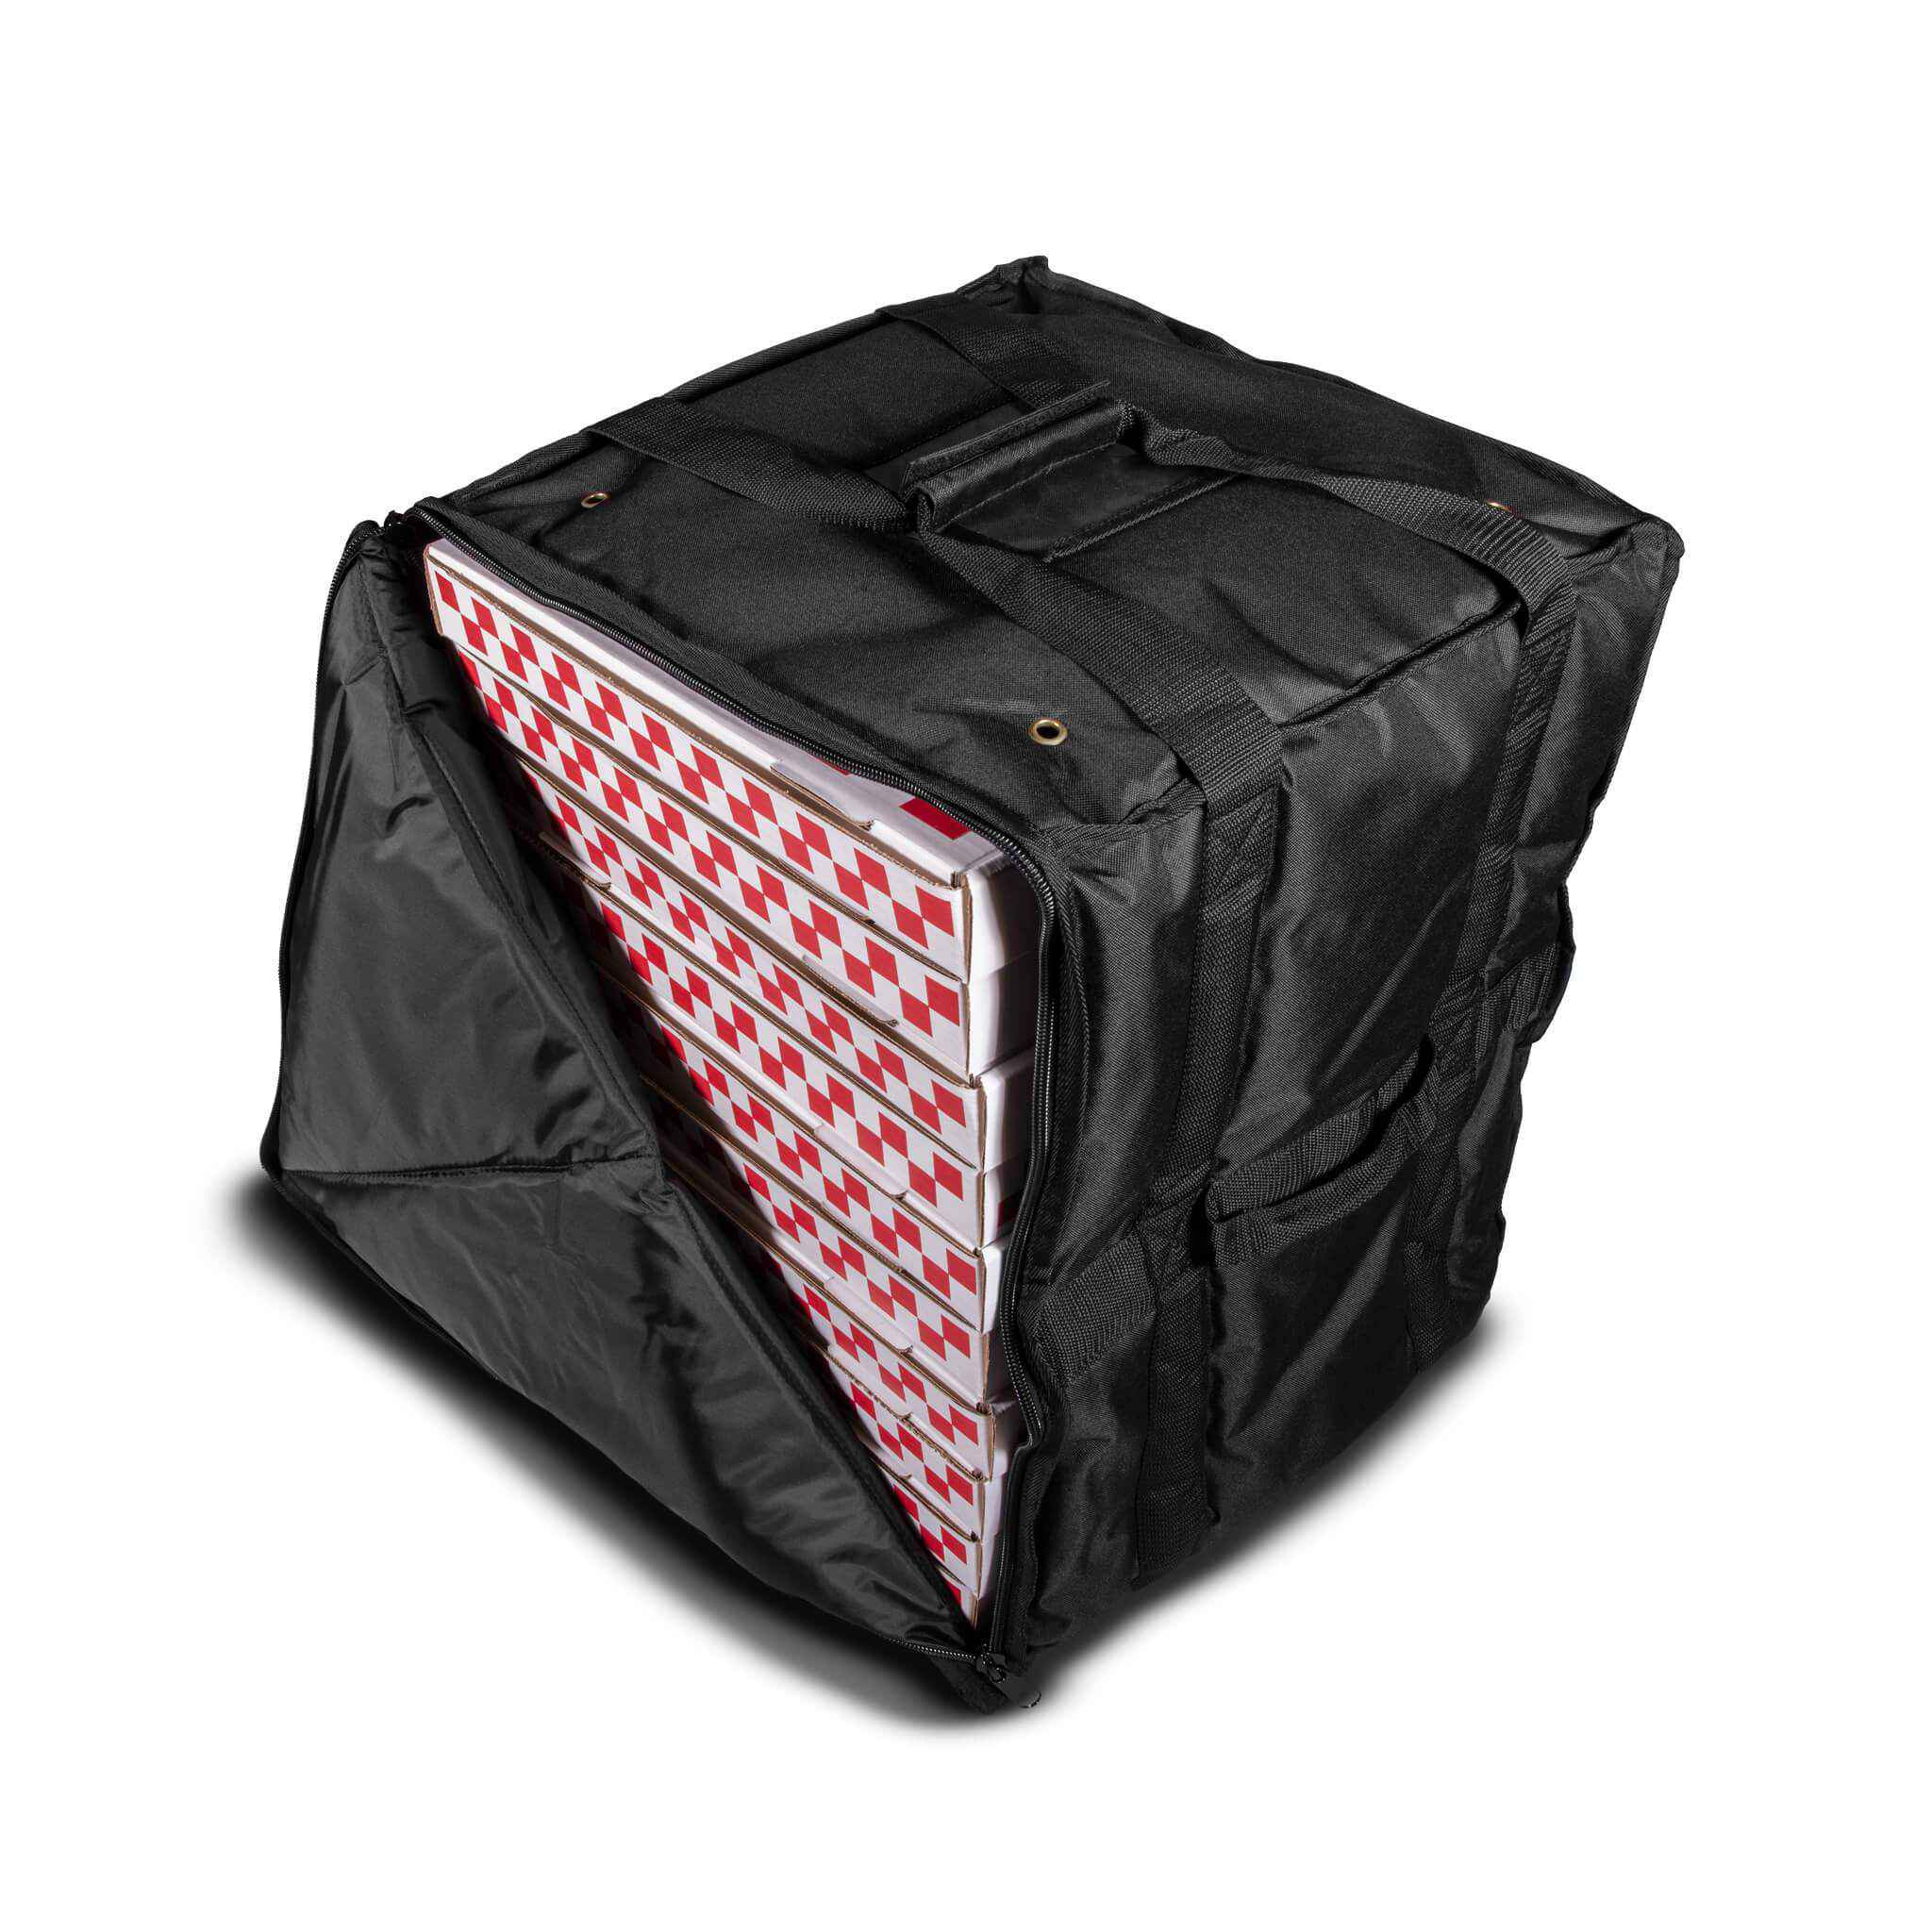 Large Party Size Hard-Sided Pizza Delivery Bag